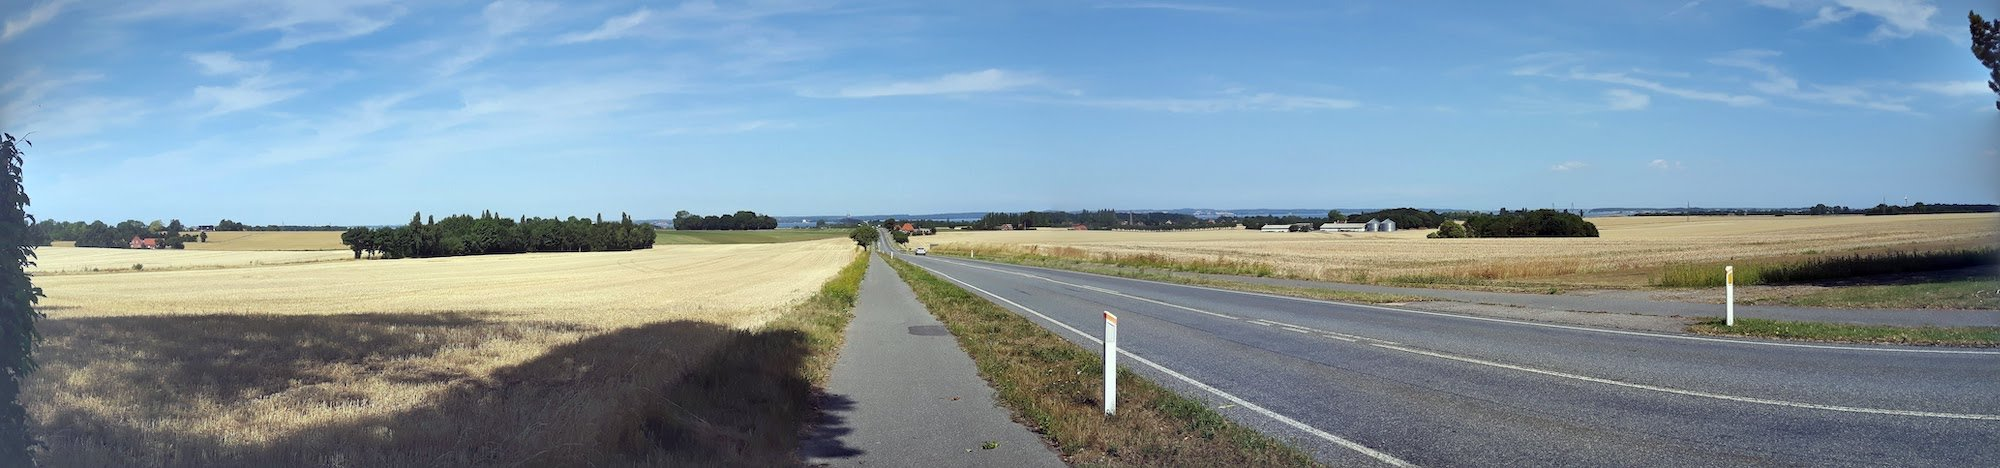 On the road in Denmark